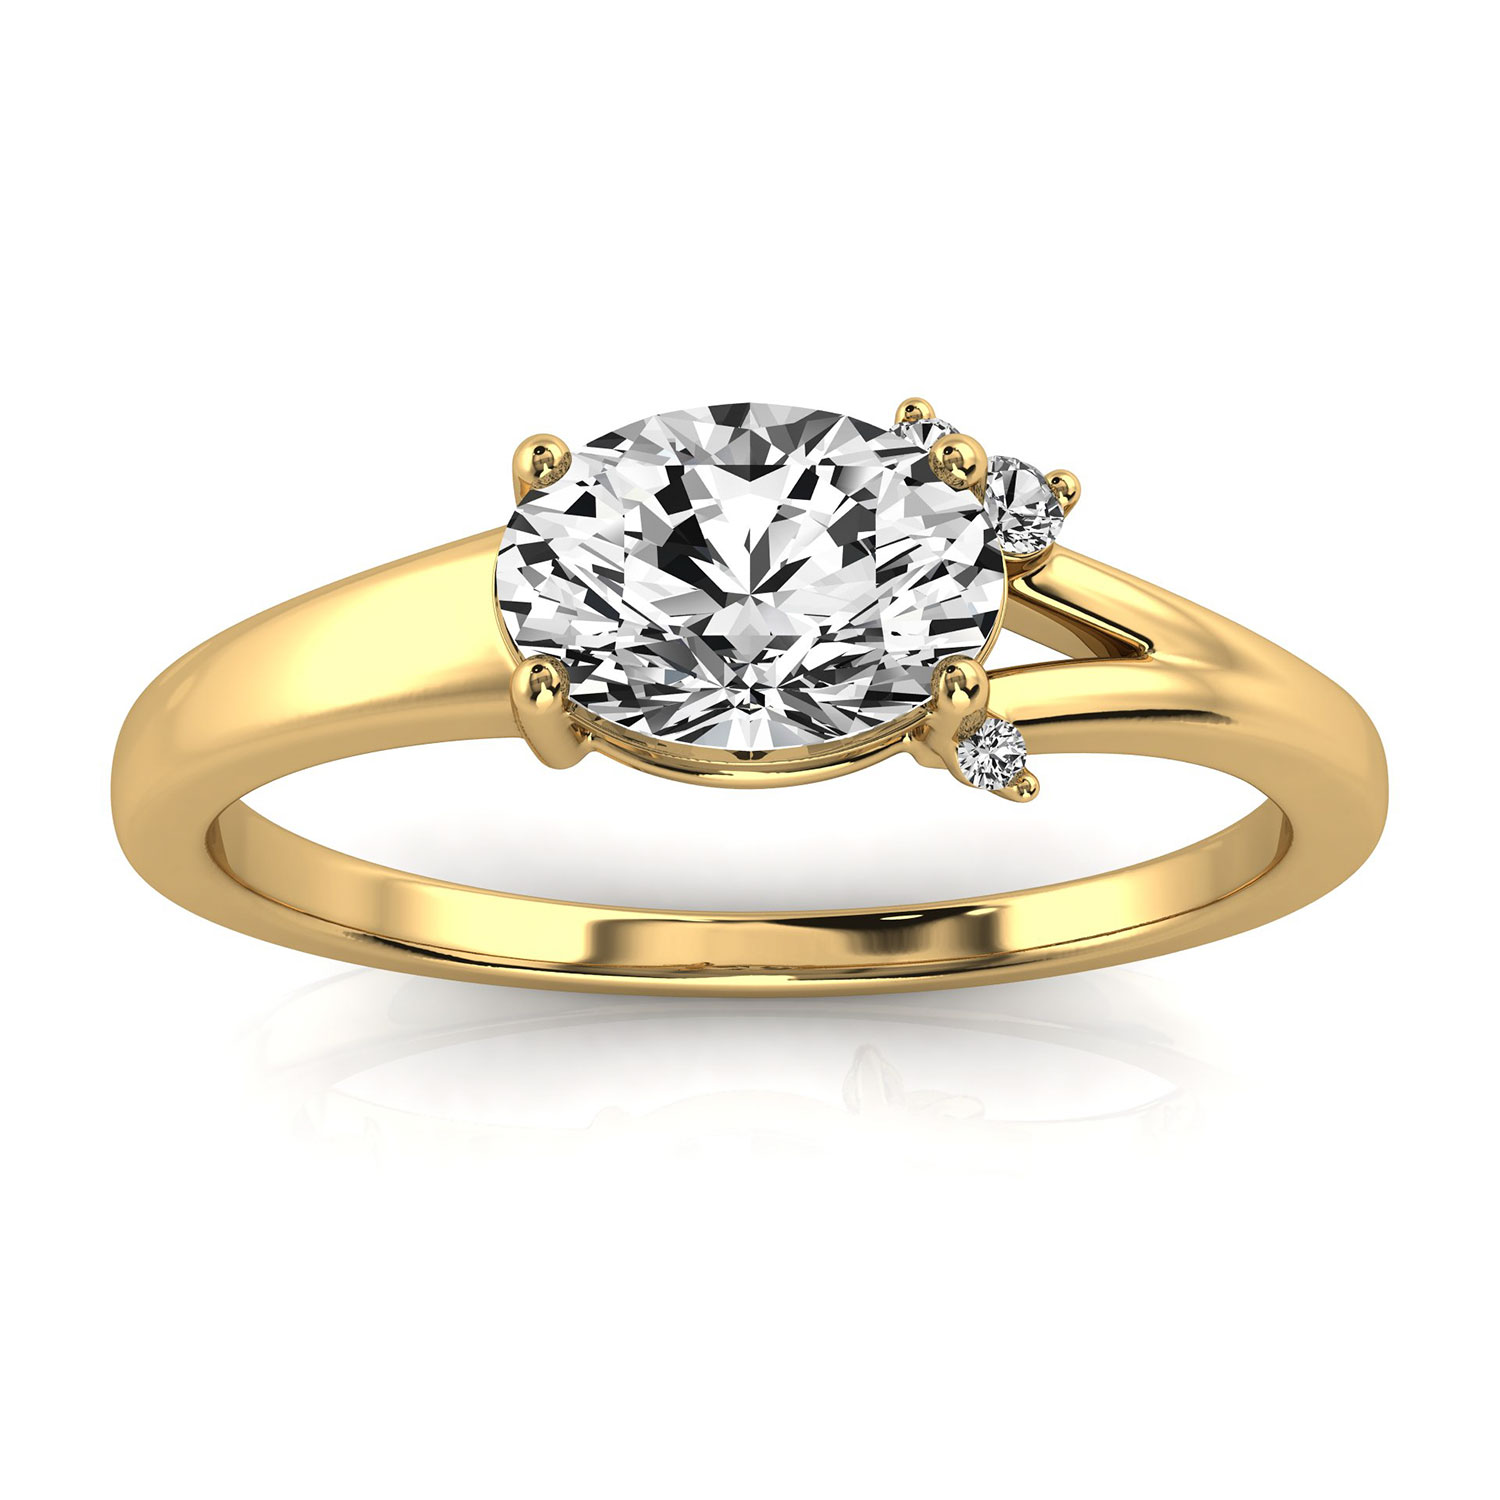 14K Yellow Gold Jax Petite Earthy Organic Design Diamond Ring  (Center - 3/4 Carat)